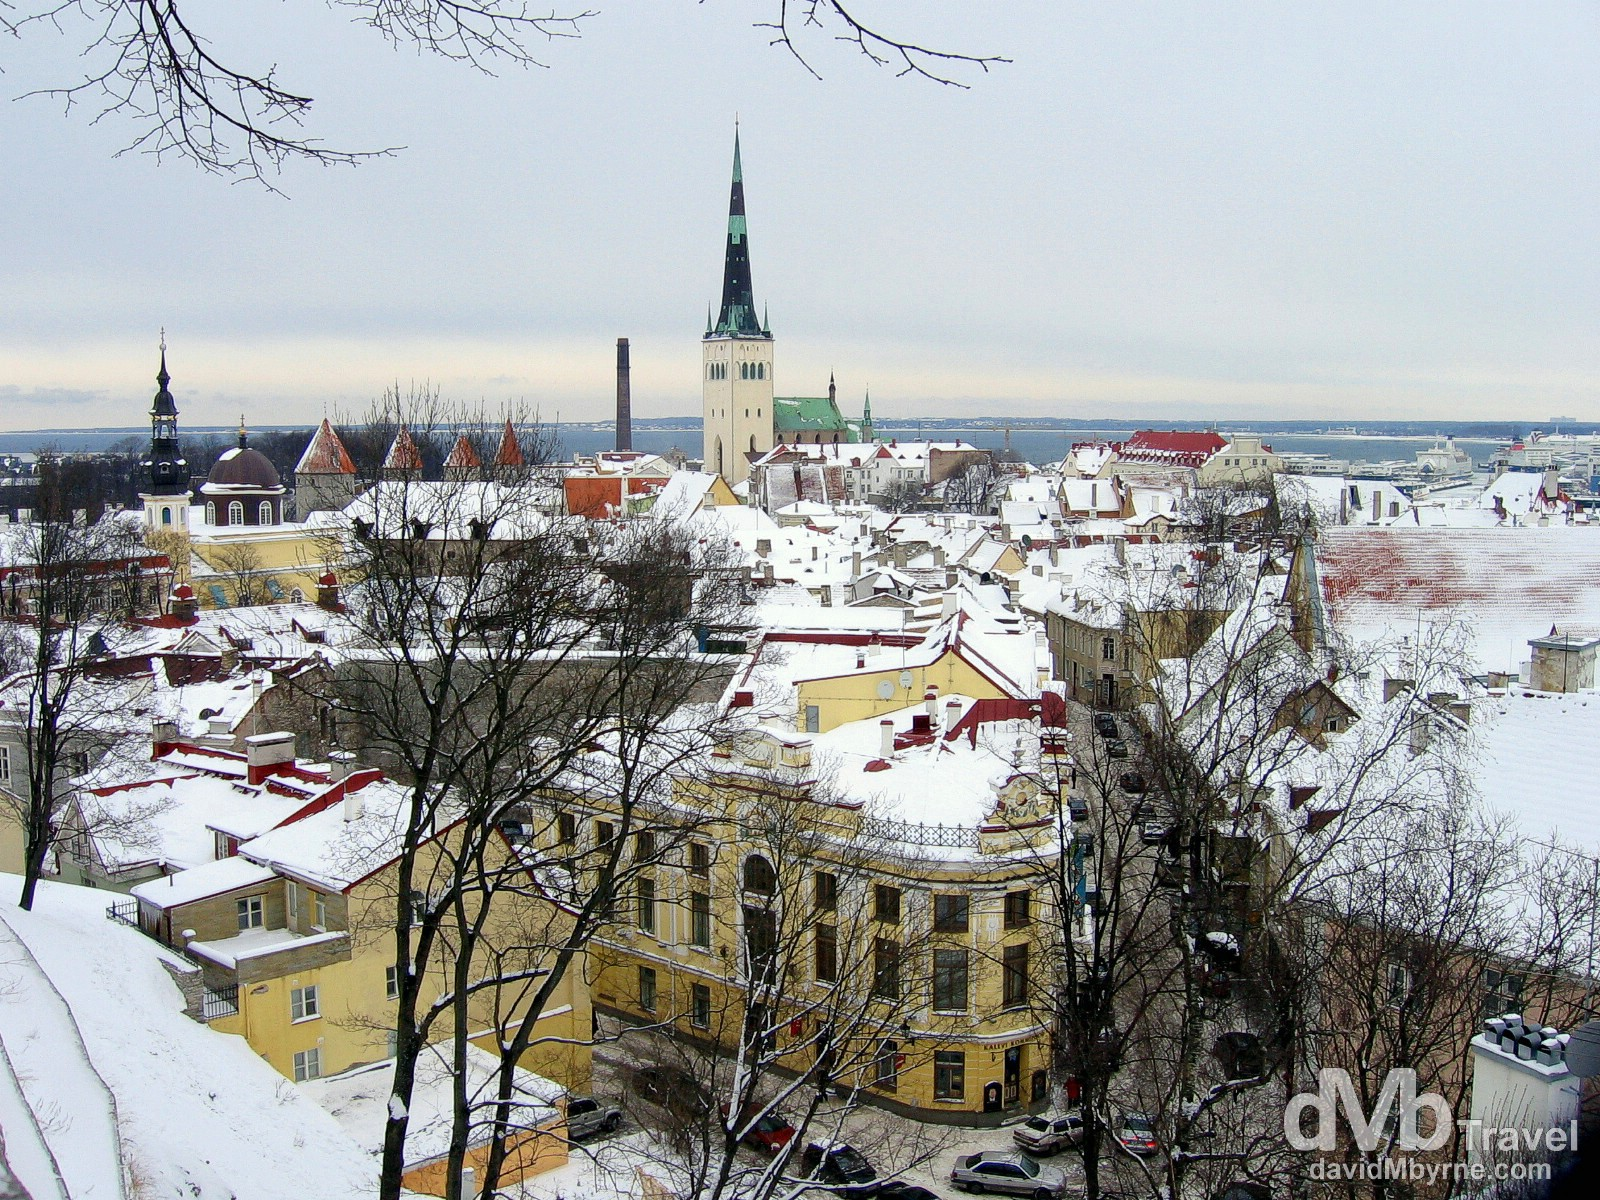 A snowy Old Town Tallinn, Estonia, as seen from a lookout in the Toompea area of the city. March 2nd 2006.